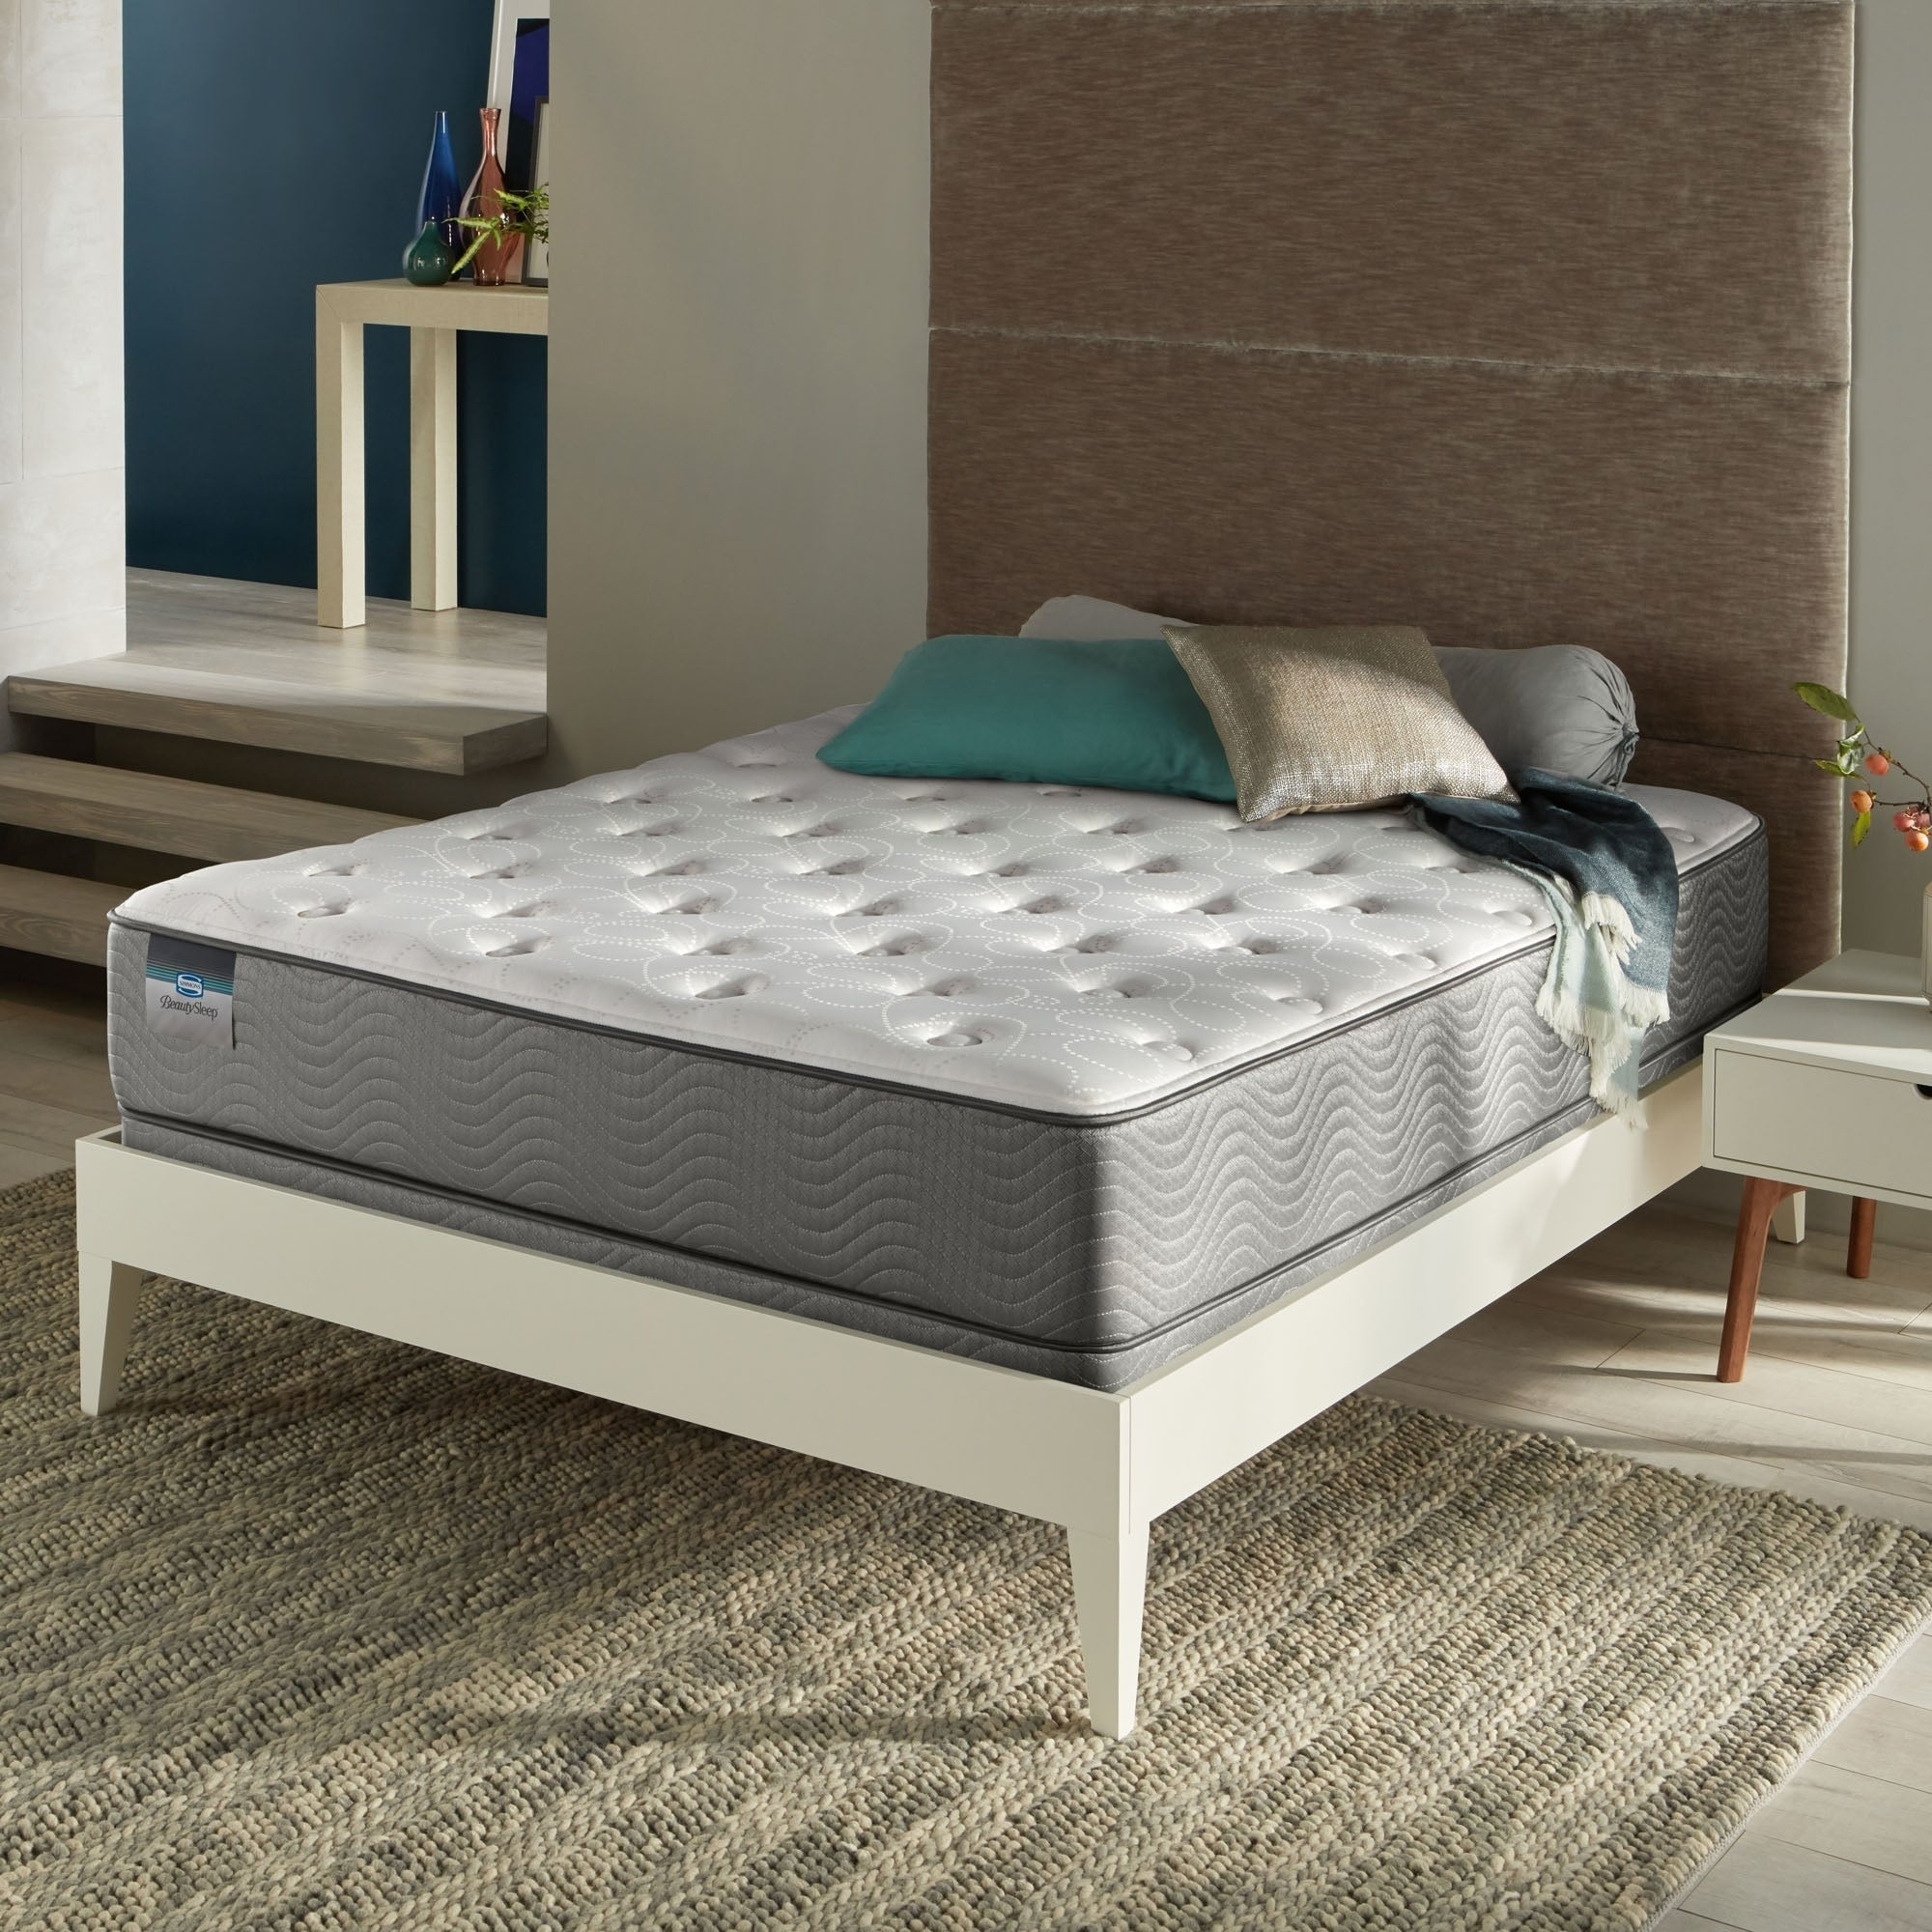 f plush serta cheap queen sets s p ii sensation mattress sensationii tepperman set